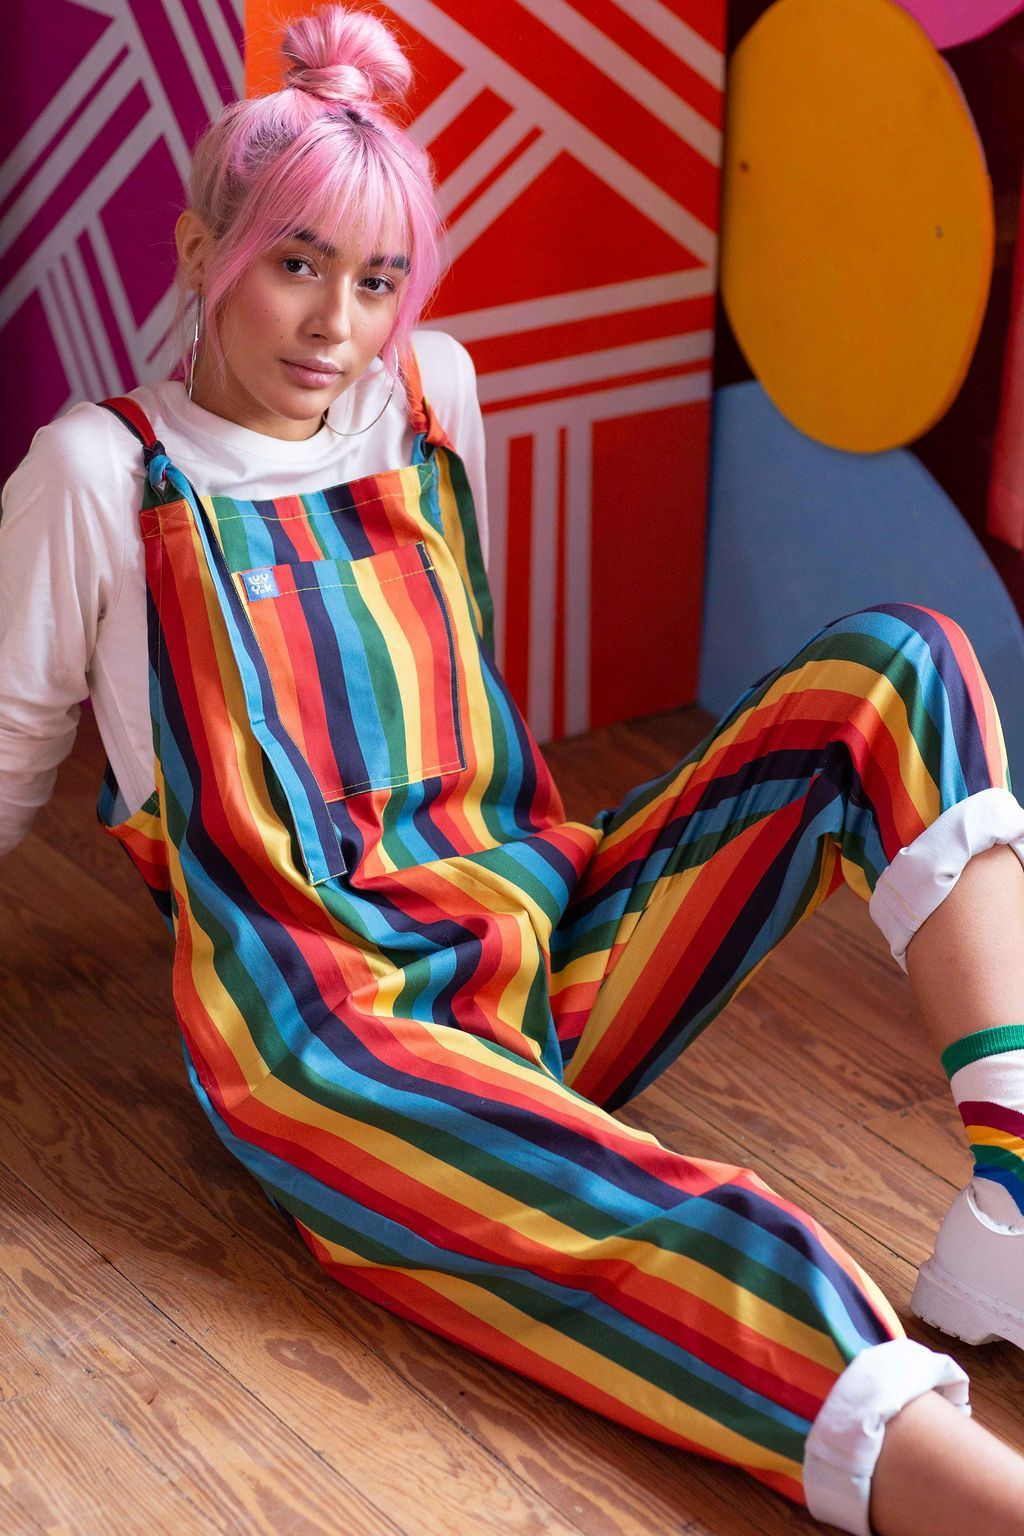 Lucy & Yak Dungarees 'Rainbowz' Limited Edition Striped Dungarees £40.00